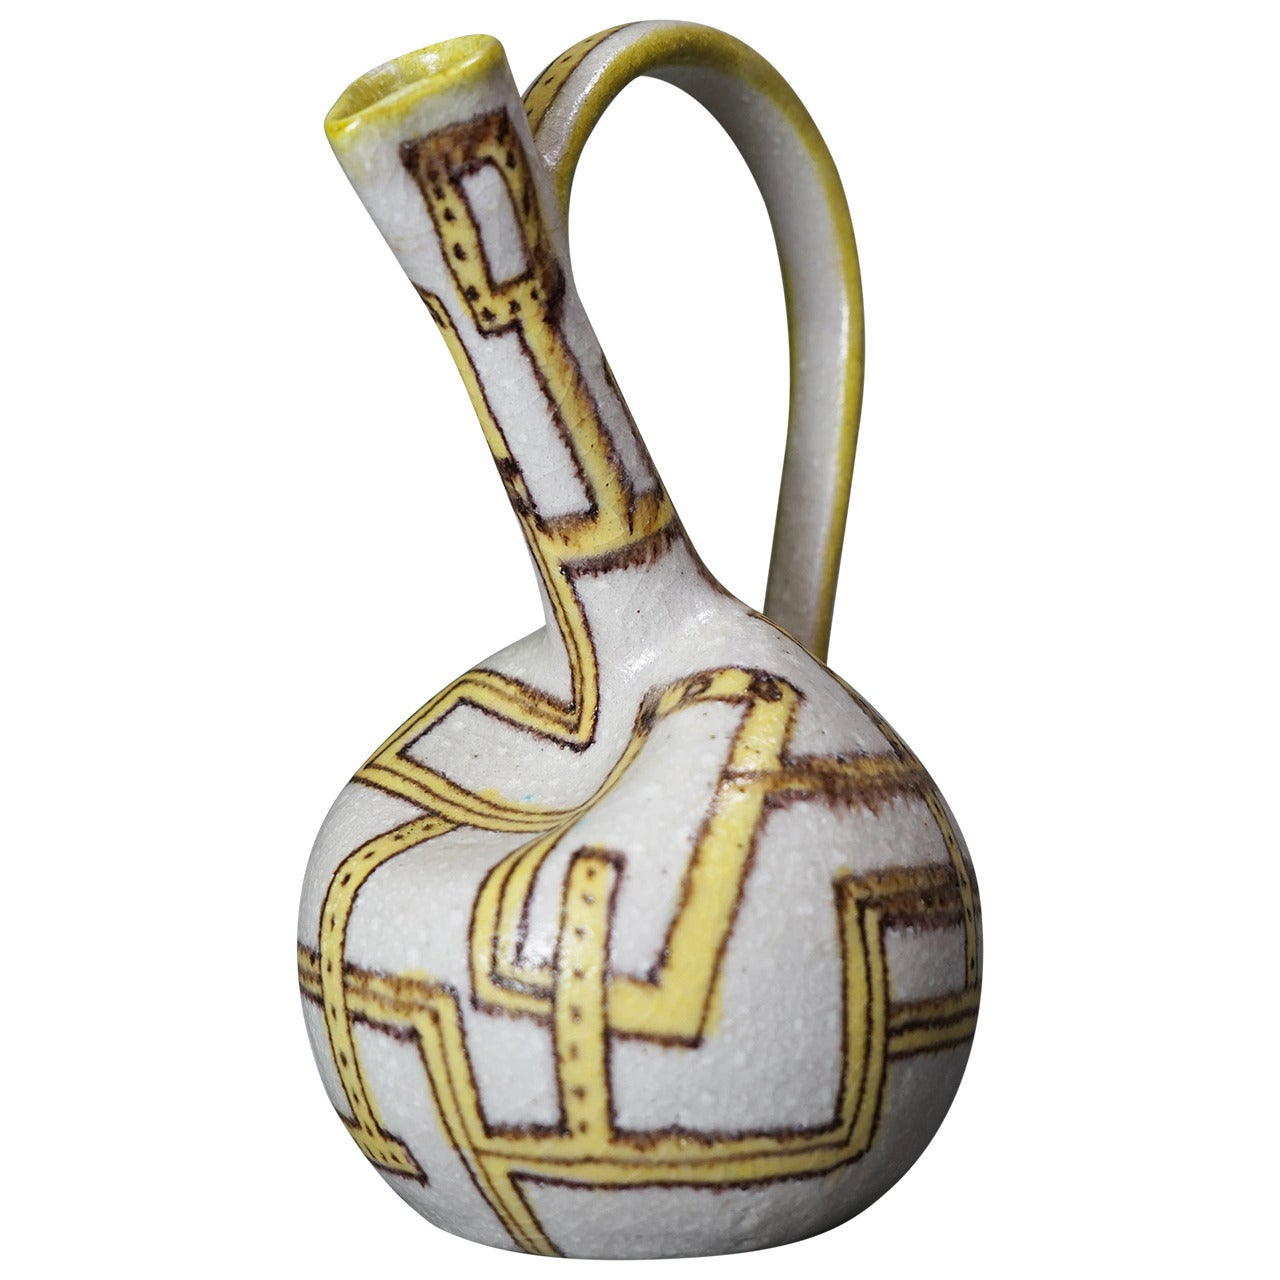 Pitcher by Guido Gambone, Italy 1950